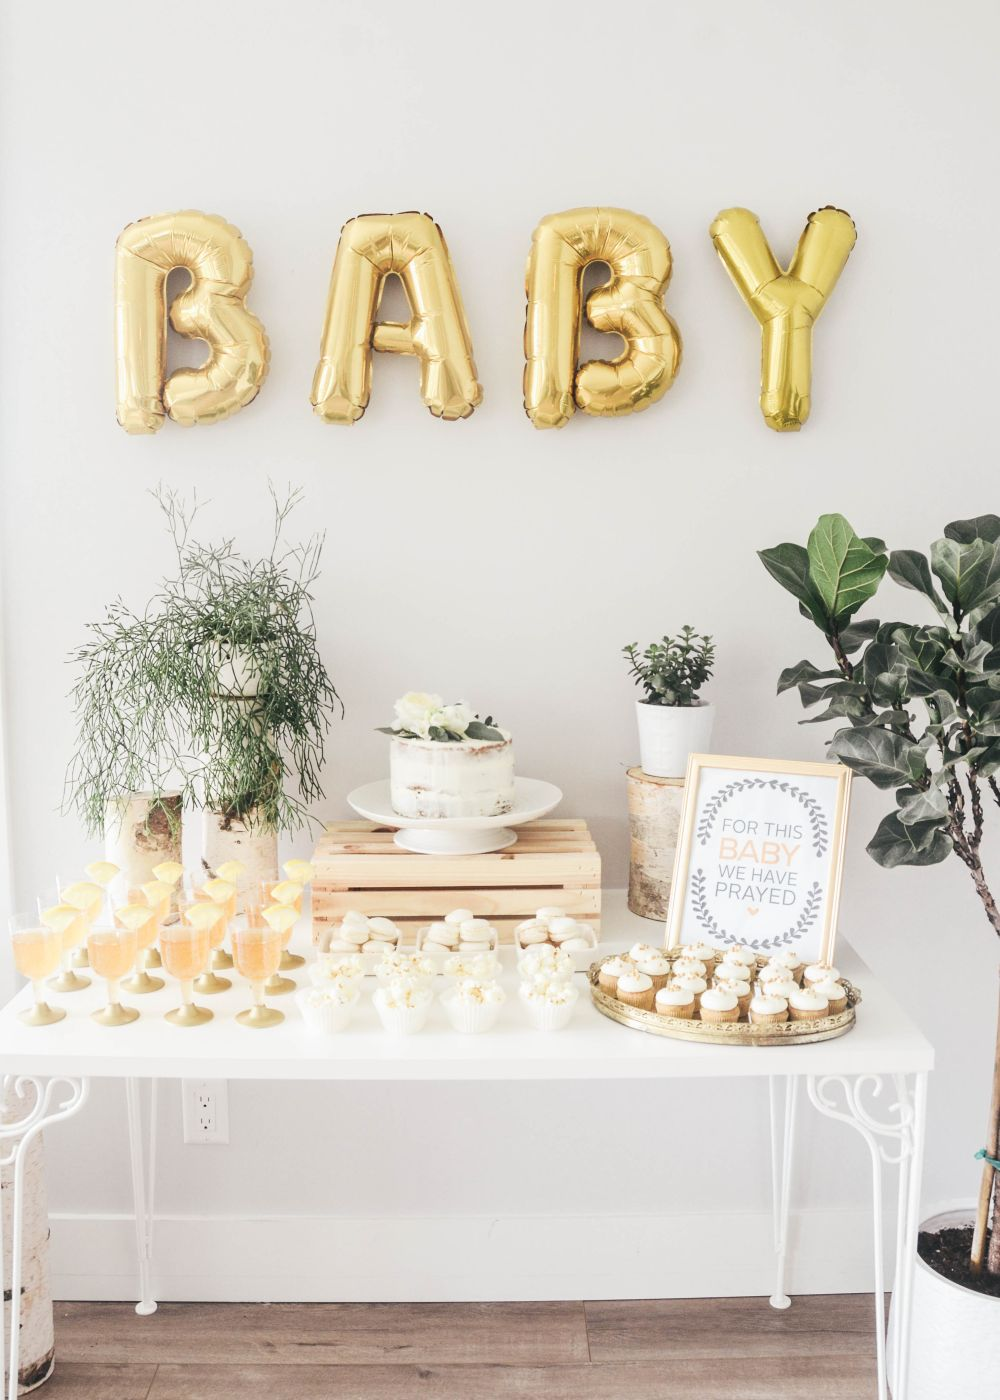 6 Steps to Planning Your Perfect Baby Shower